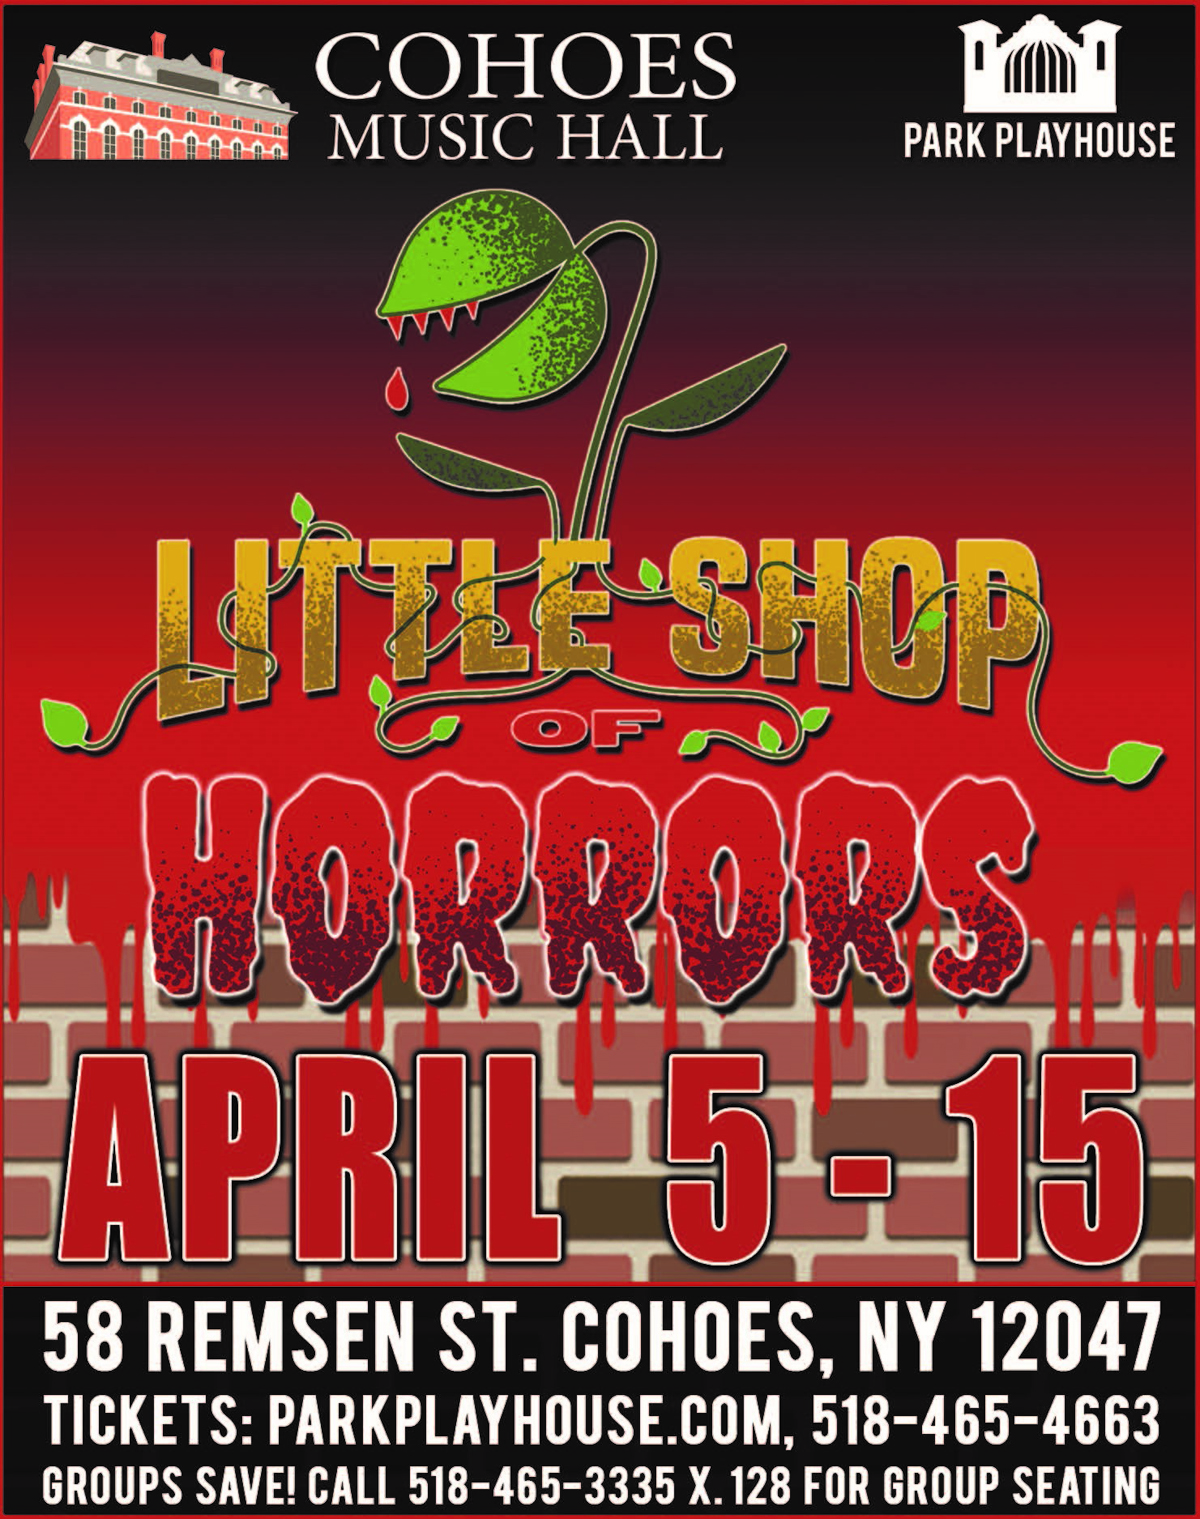 Little Shop of Horrors flyer